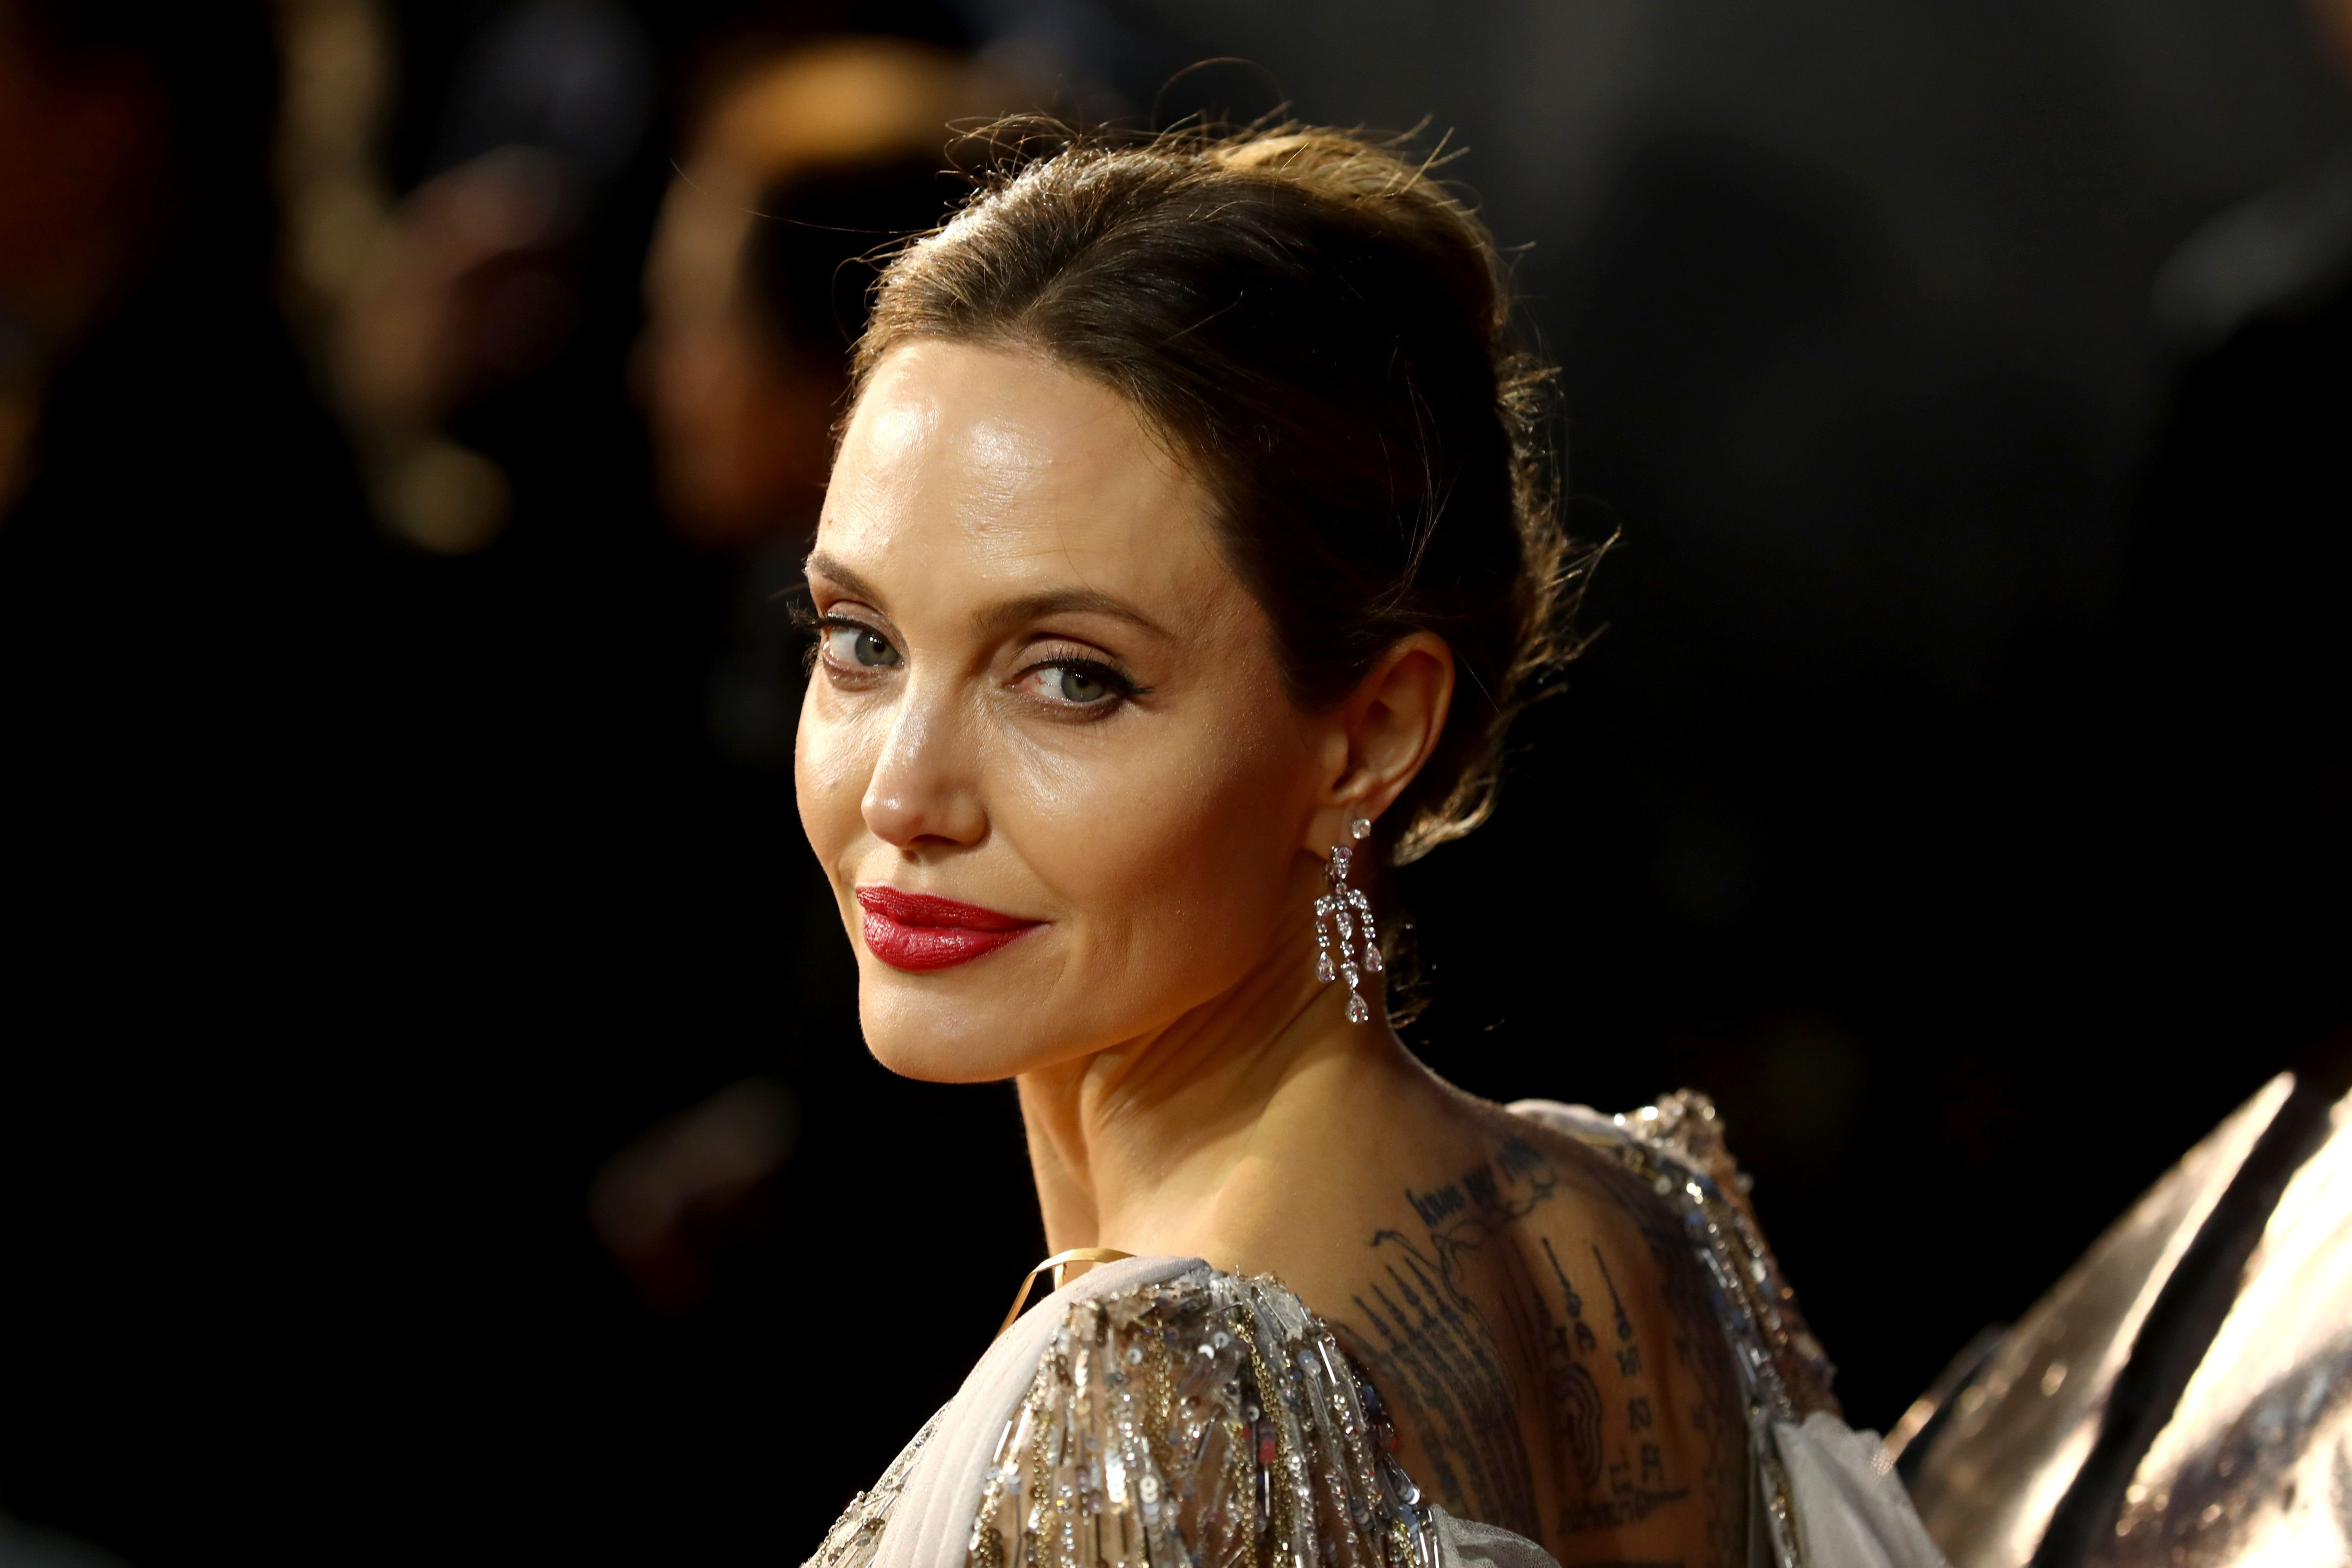 """Angelina Jolie at the European premiere of """"Maleficent: Mistress of Evil"""" at Odeon IMAX Waterloo on October 09, 2019 